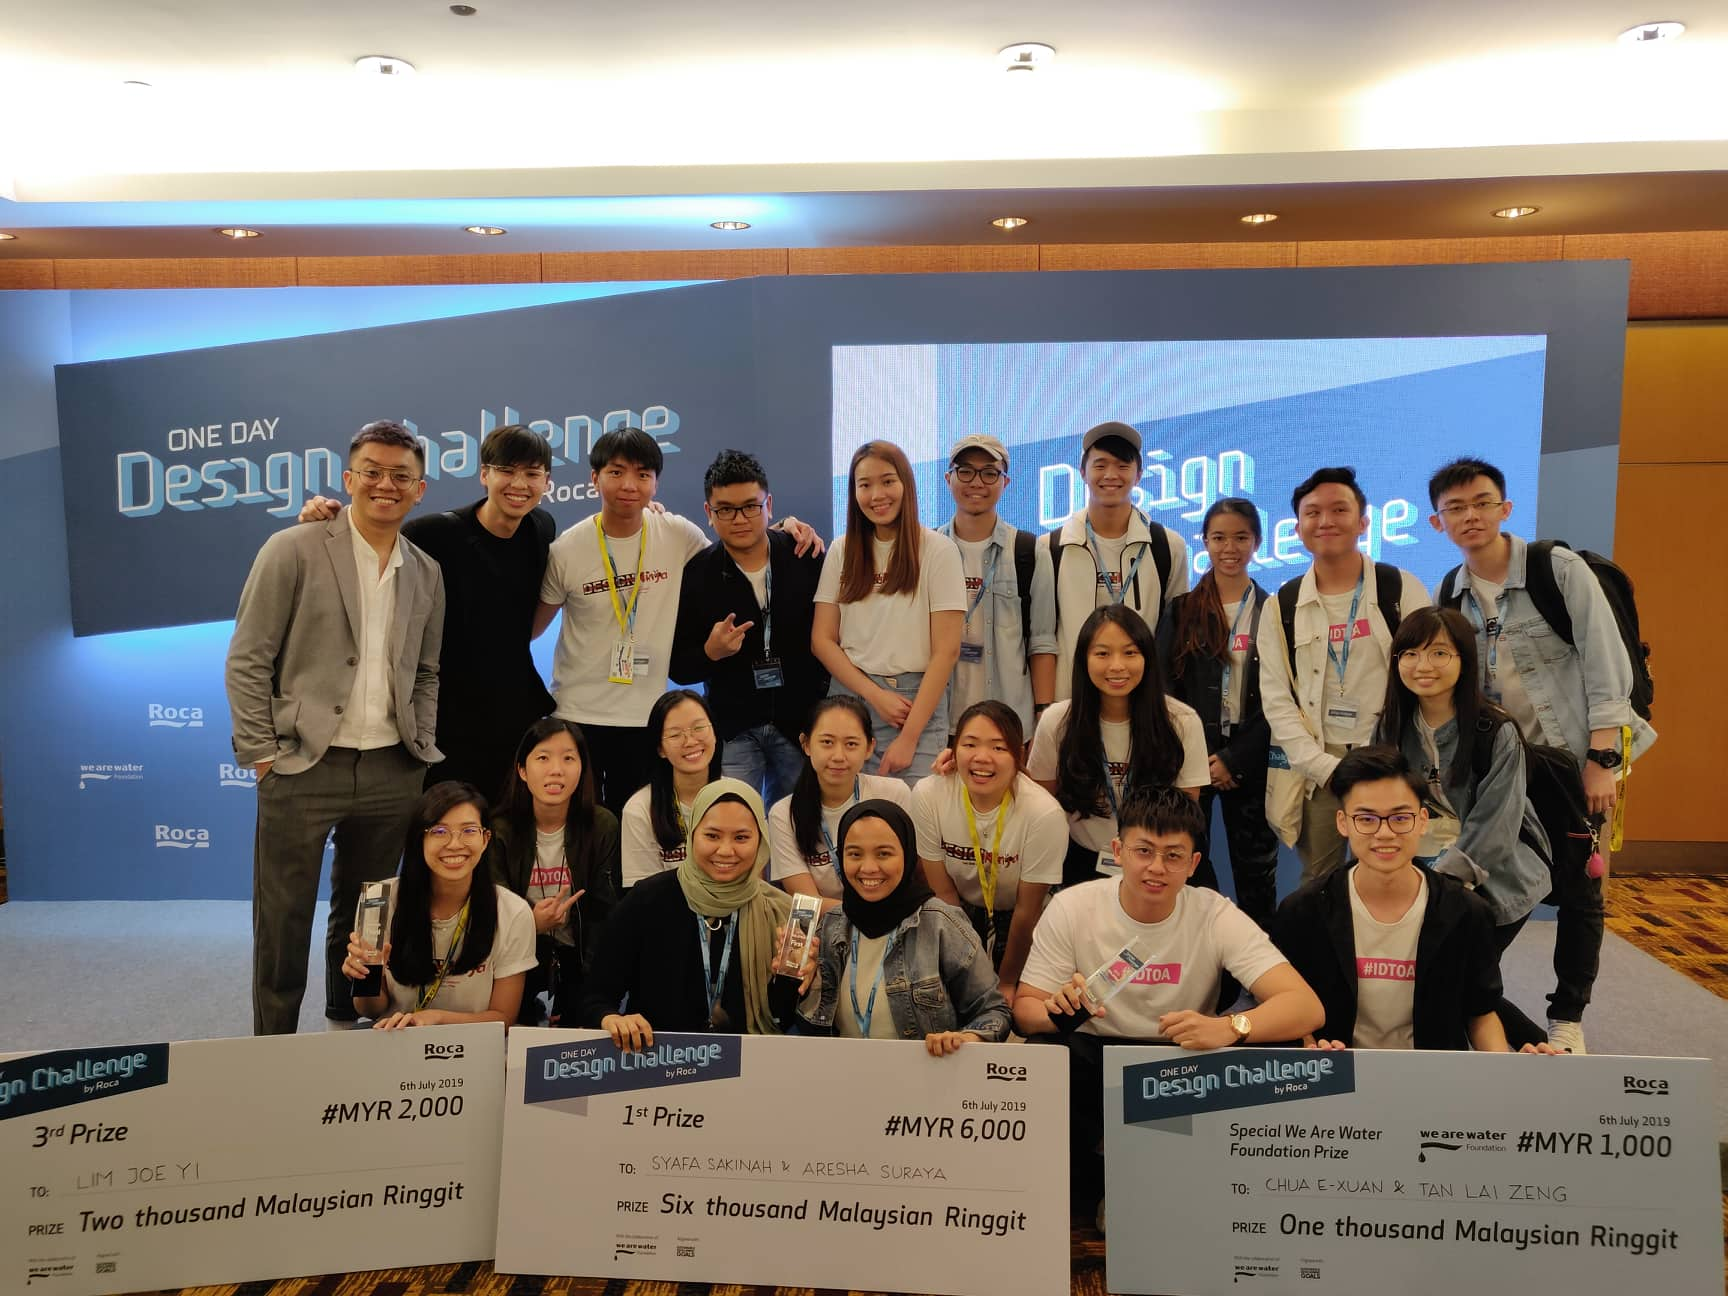 The winning teams from The One Academy